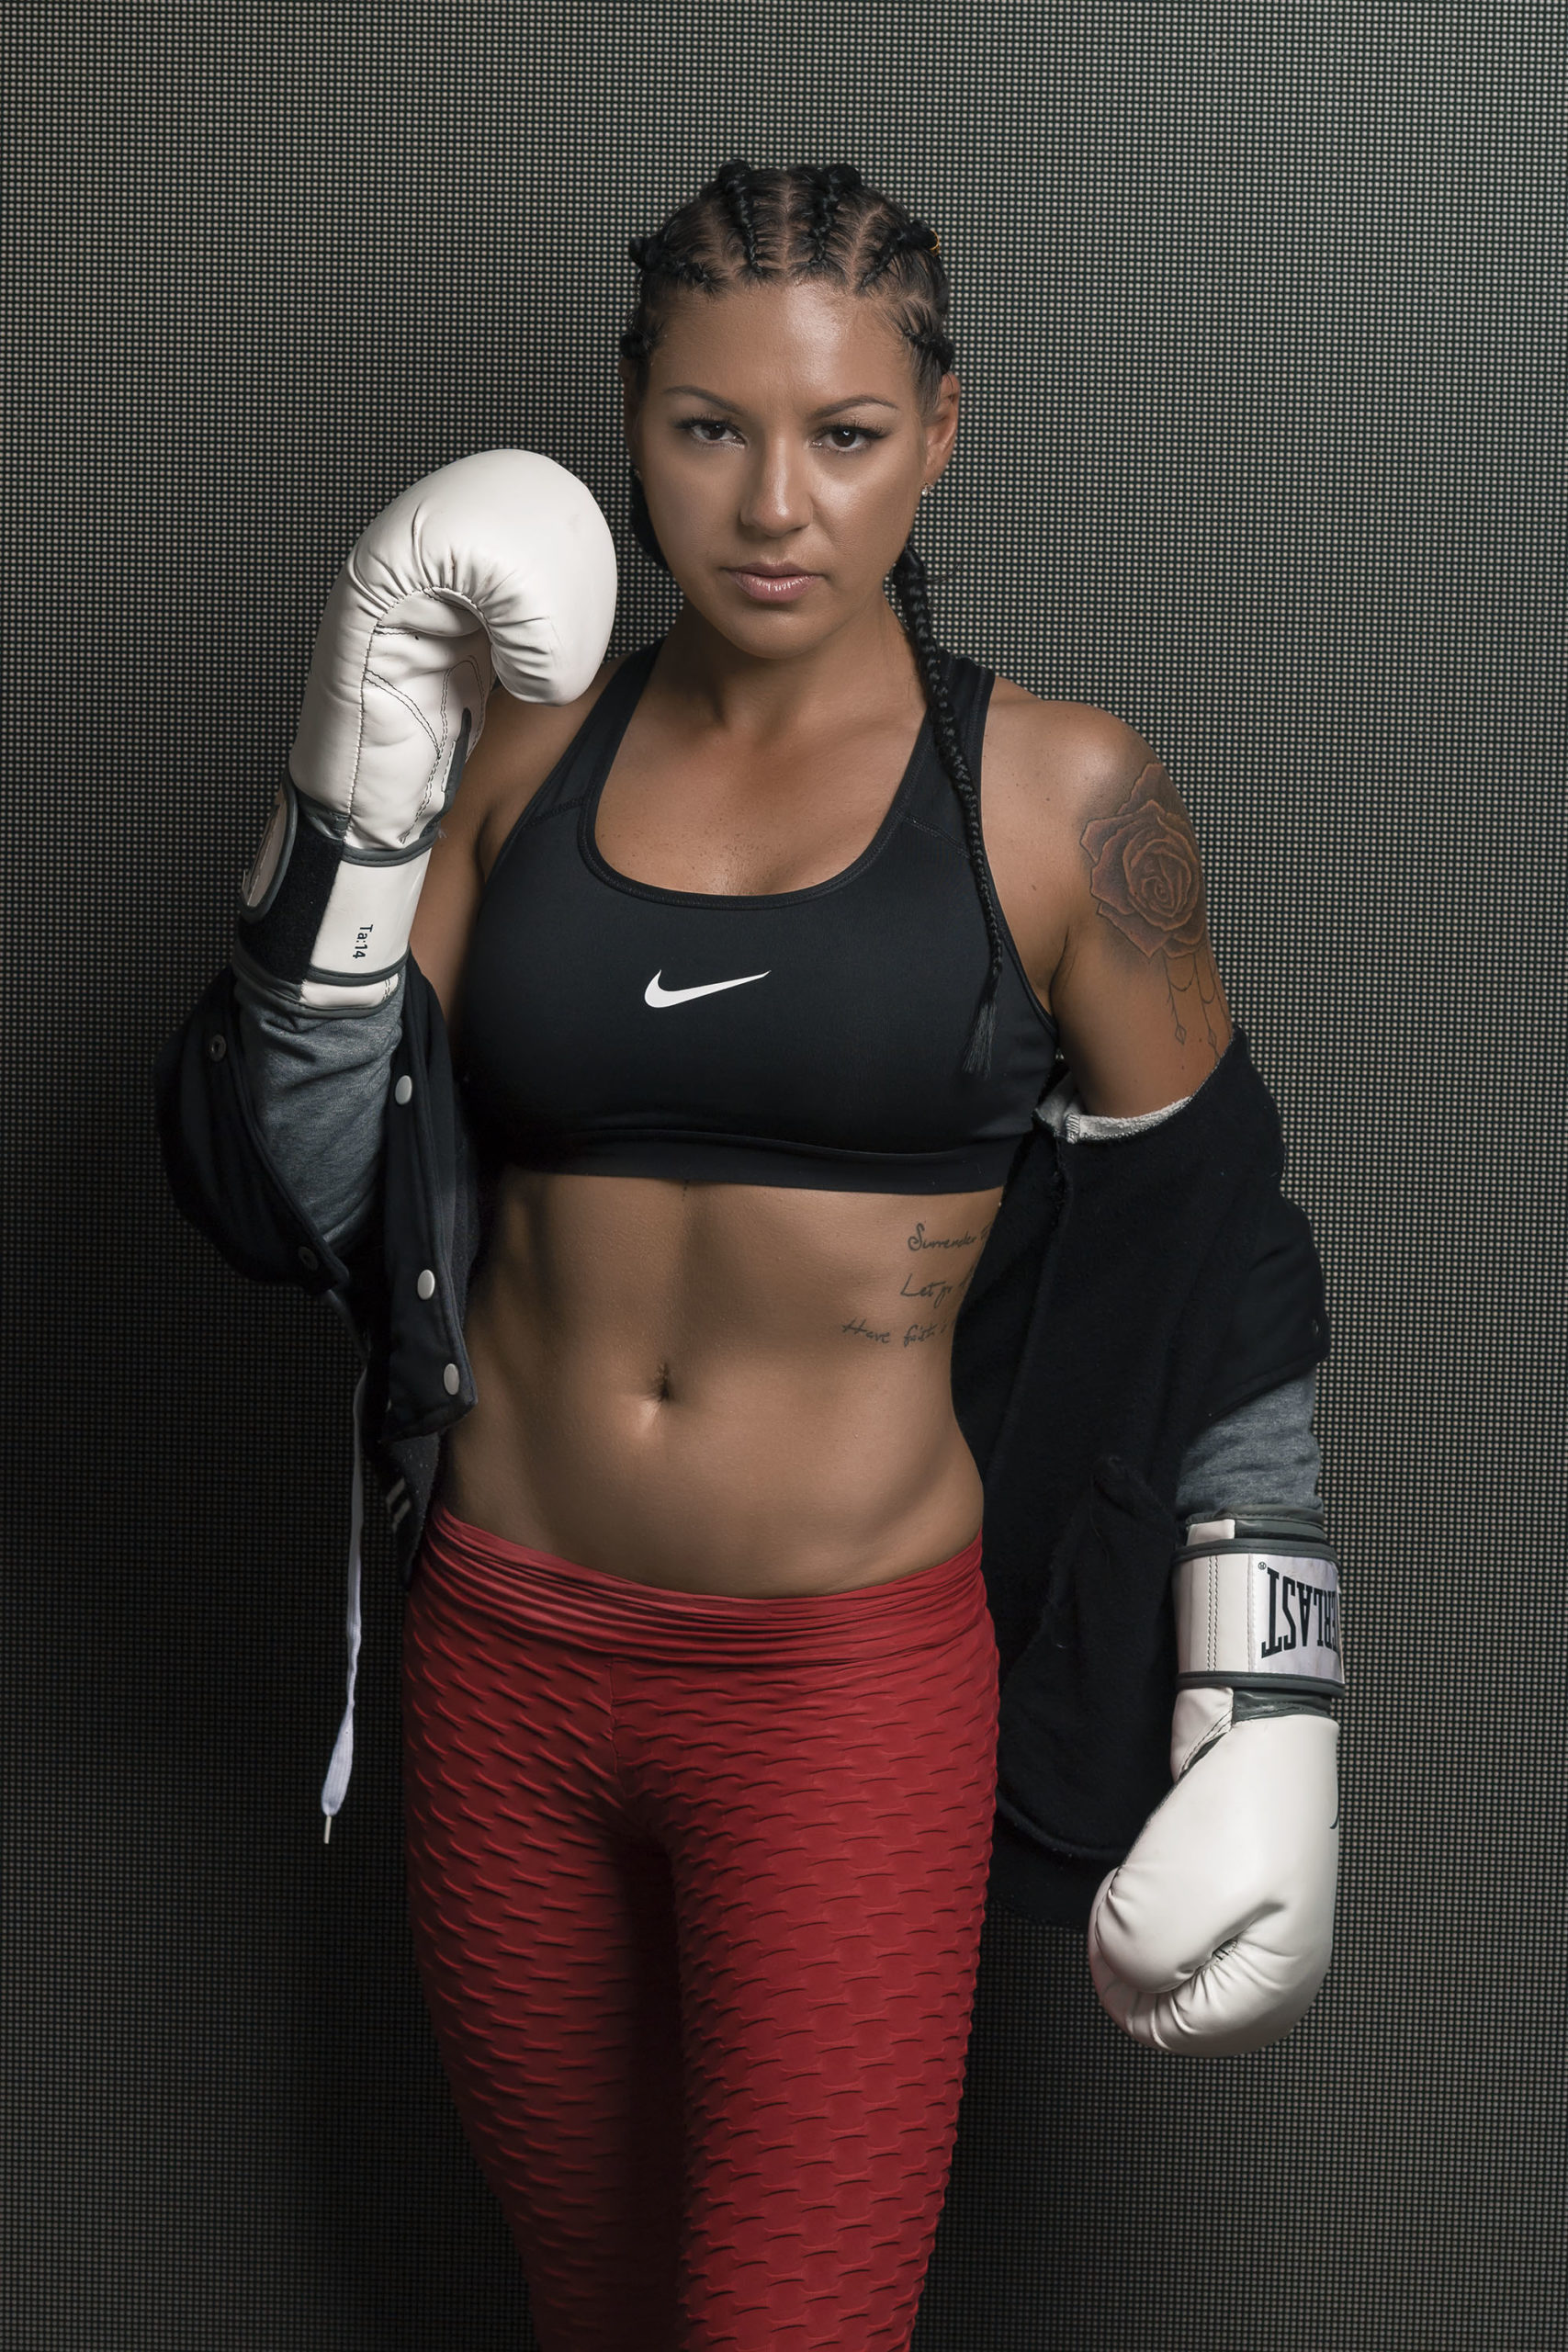 Janey Queensland female fitness model wearing Everlast boxing gloves and Nike branded outfit